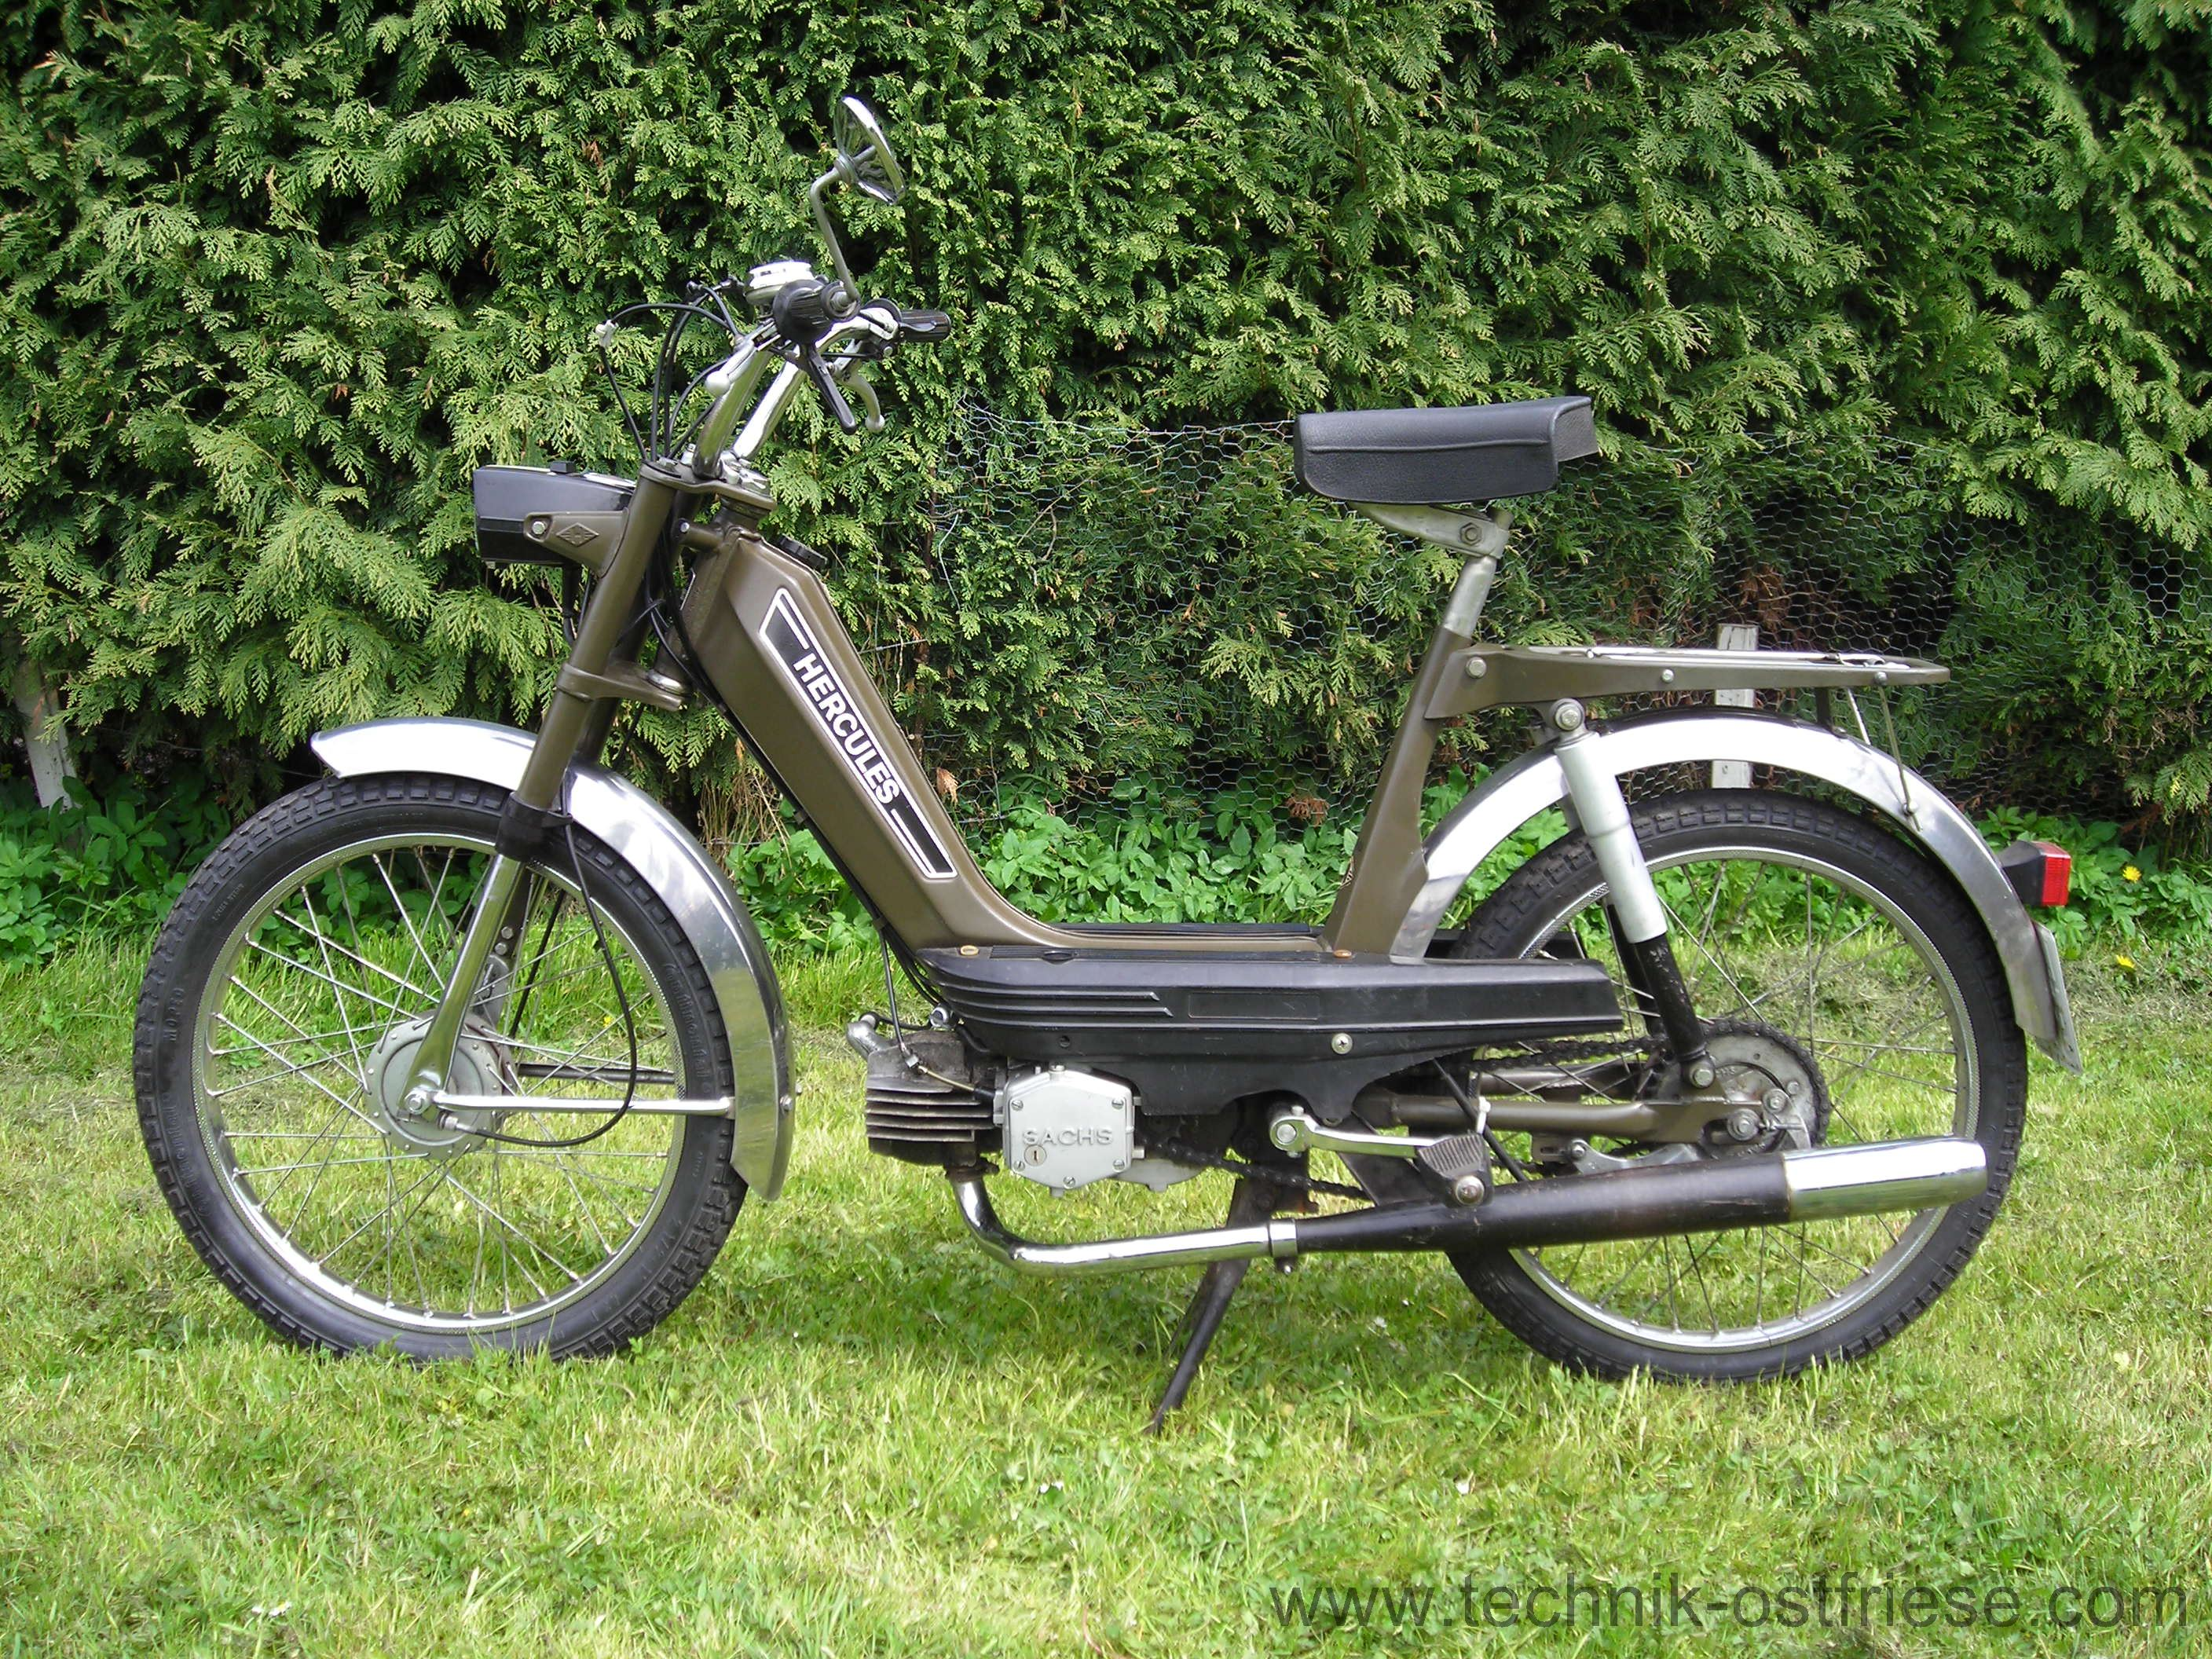 Sachs moped 15